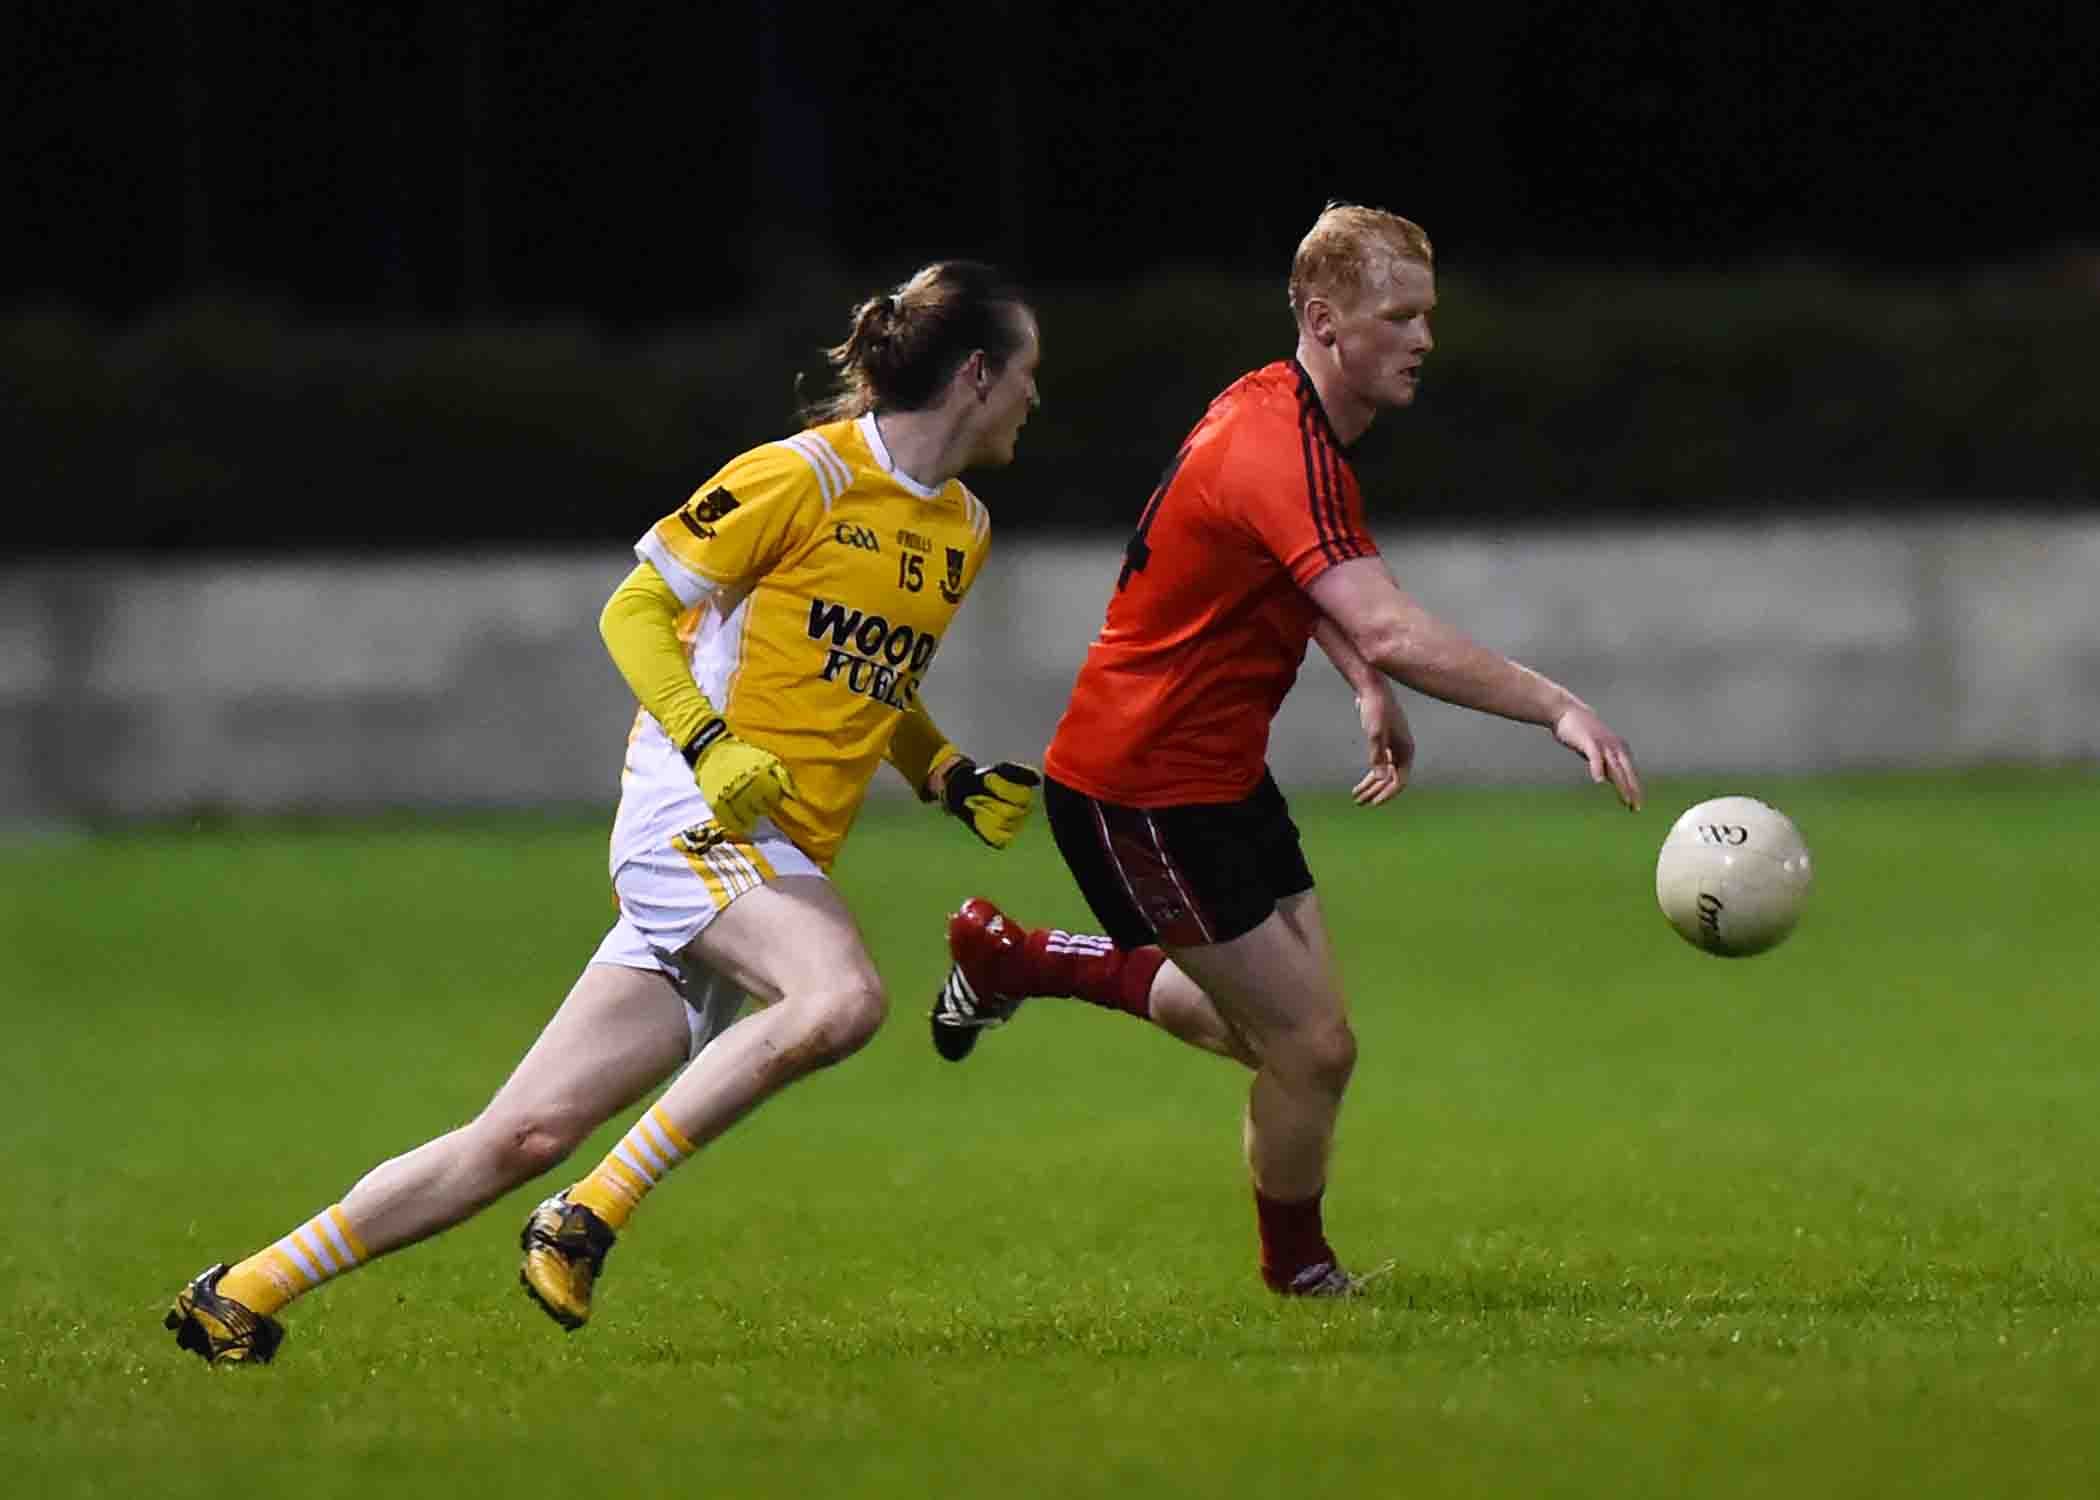 Truagh send Clontibret Packing from the Championship